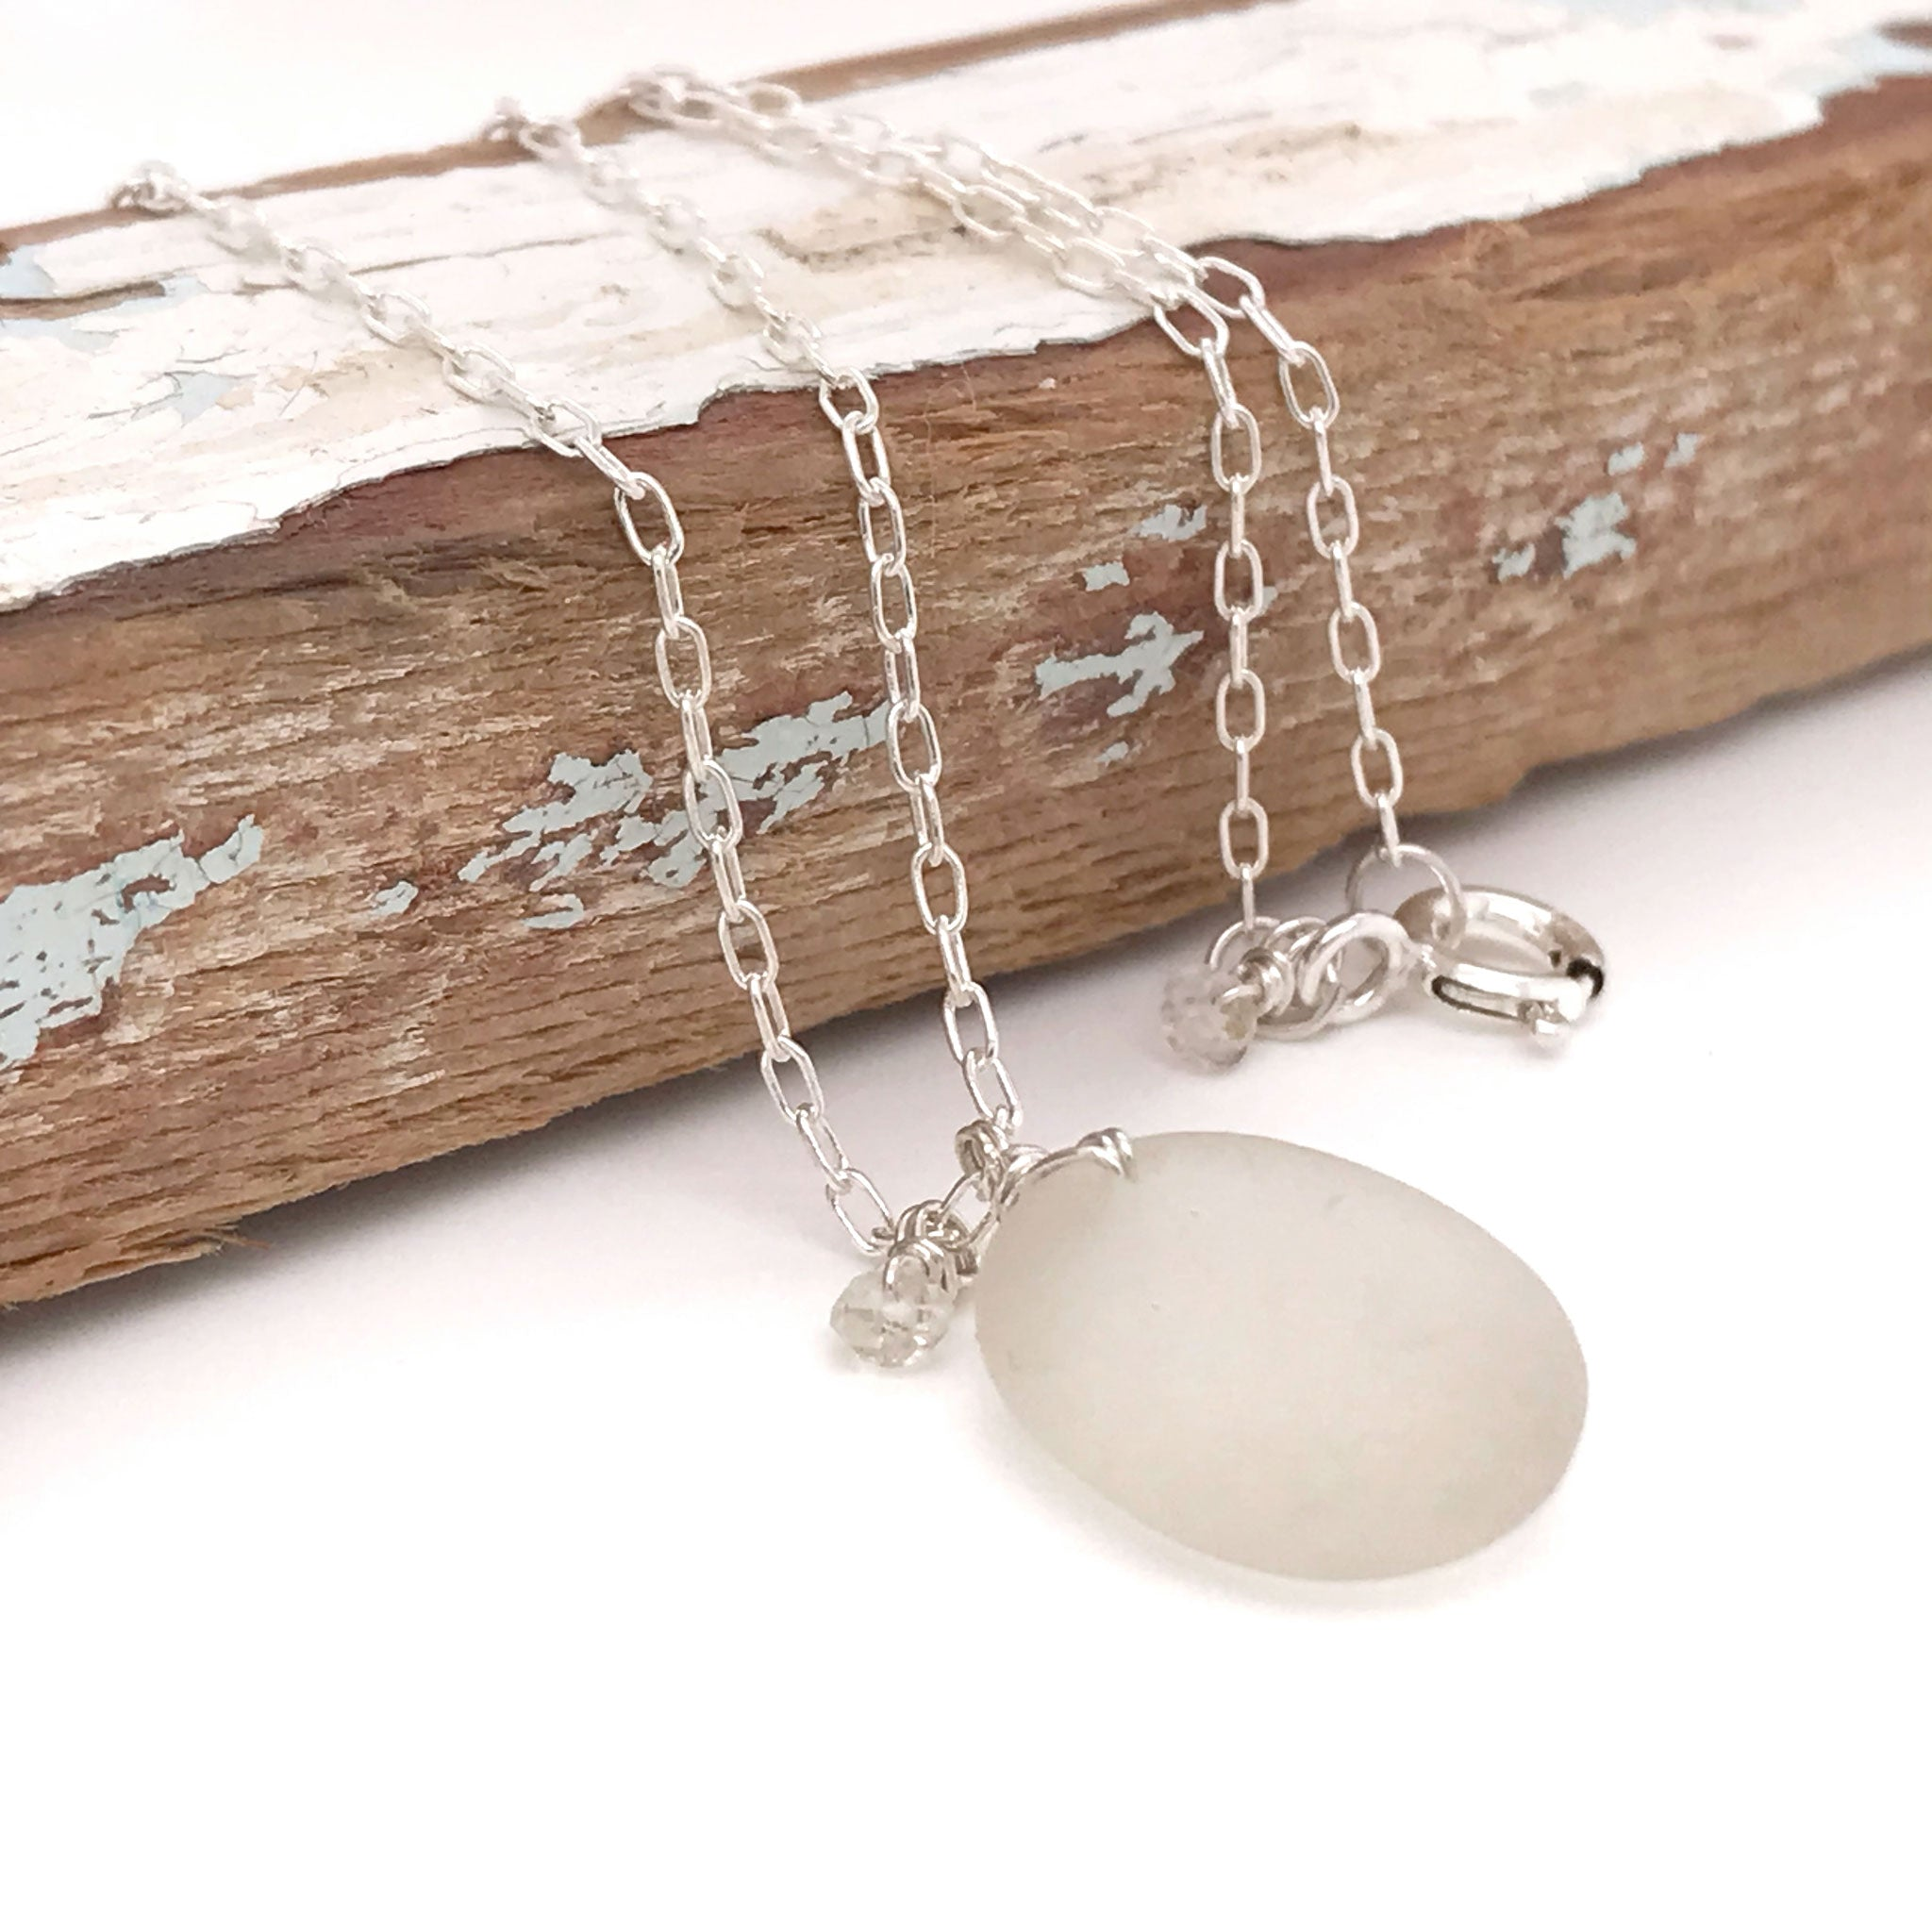 clear seaglass necklace sterling silver with aquamarines kriket Broadhurst jewelry